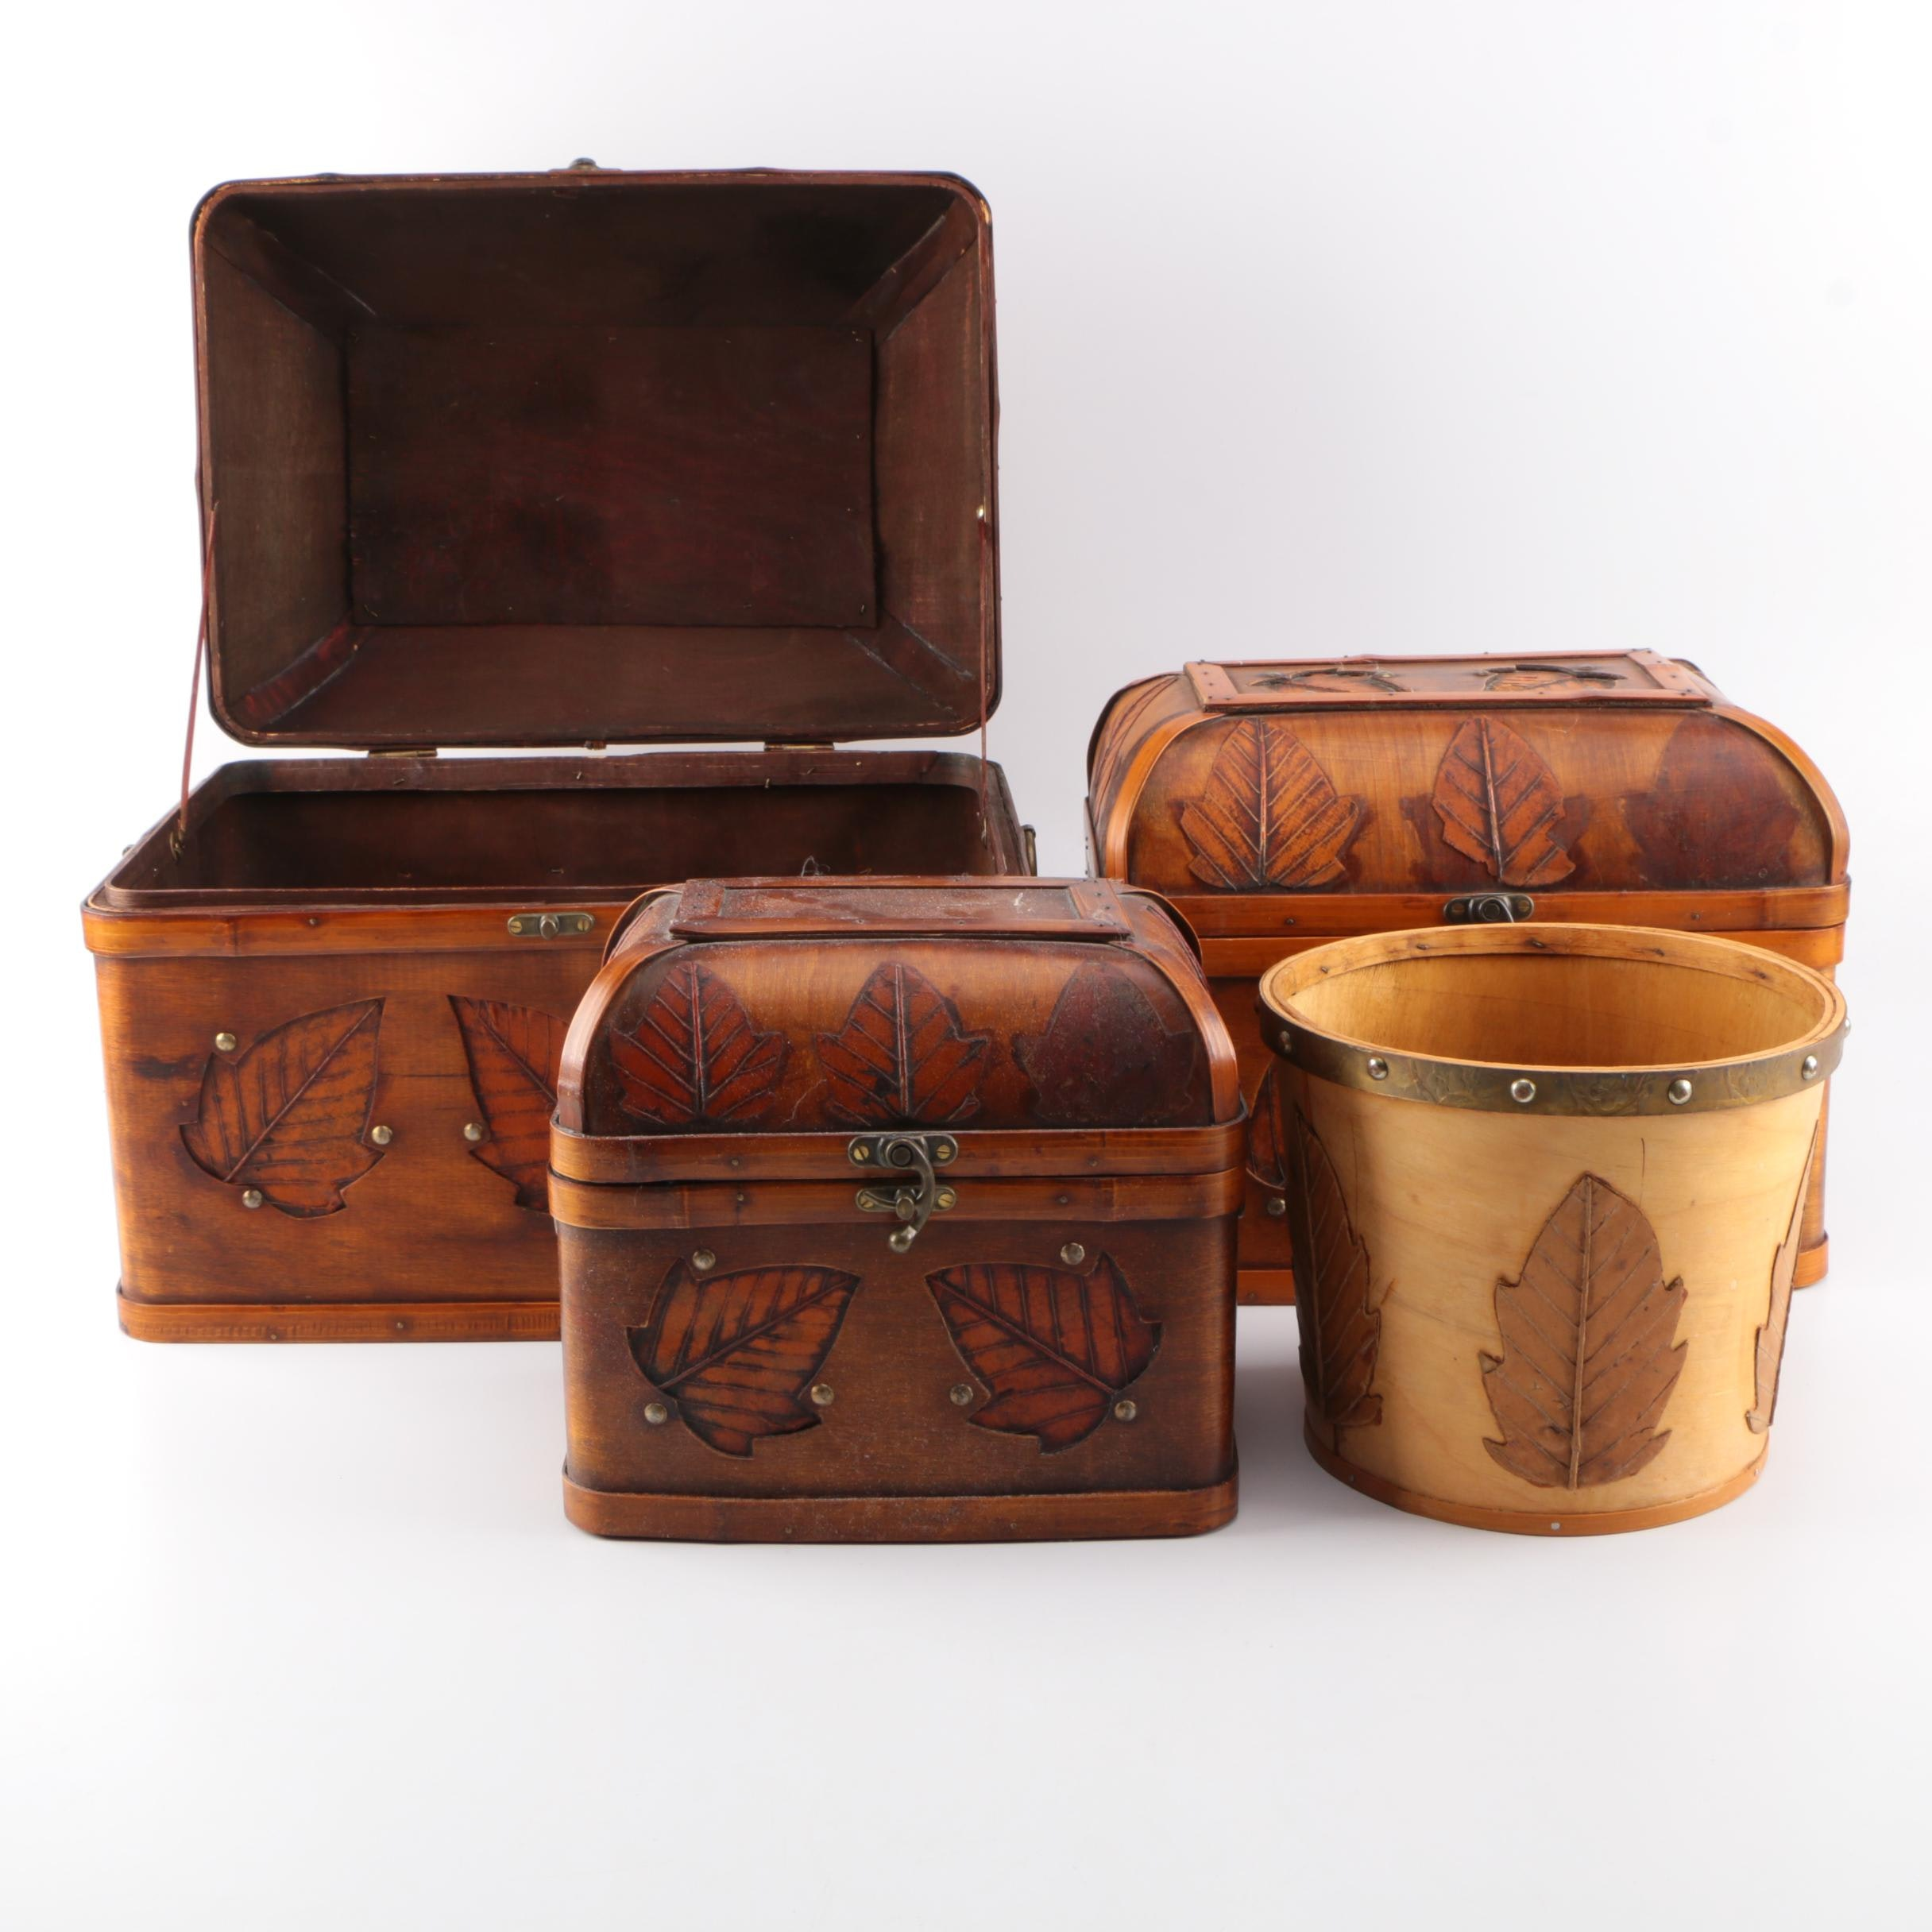 Set of Decorative Nesting Boxes and a Container